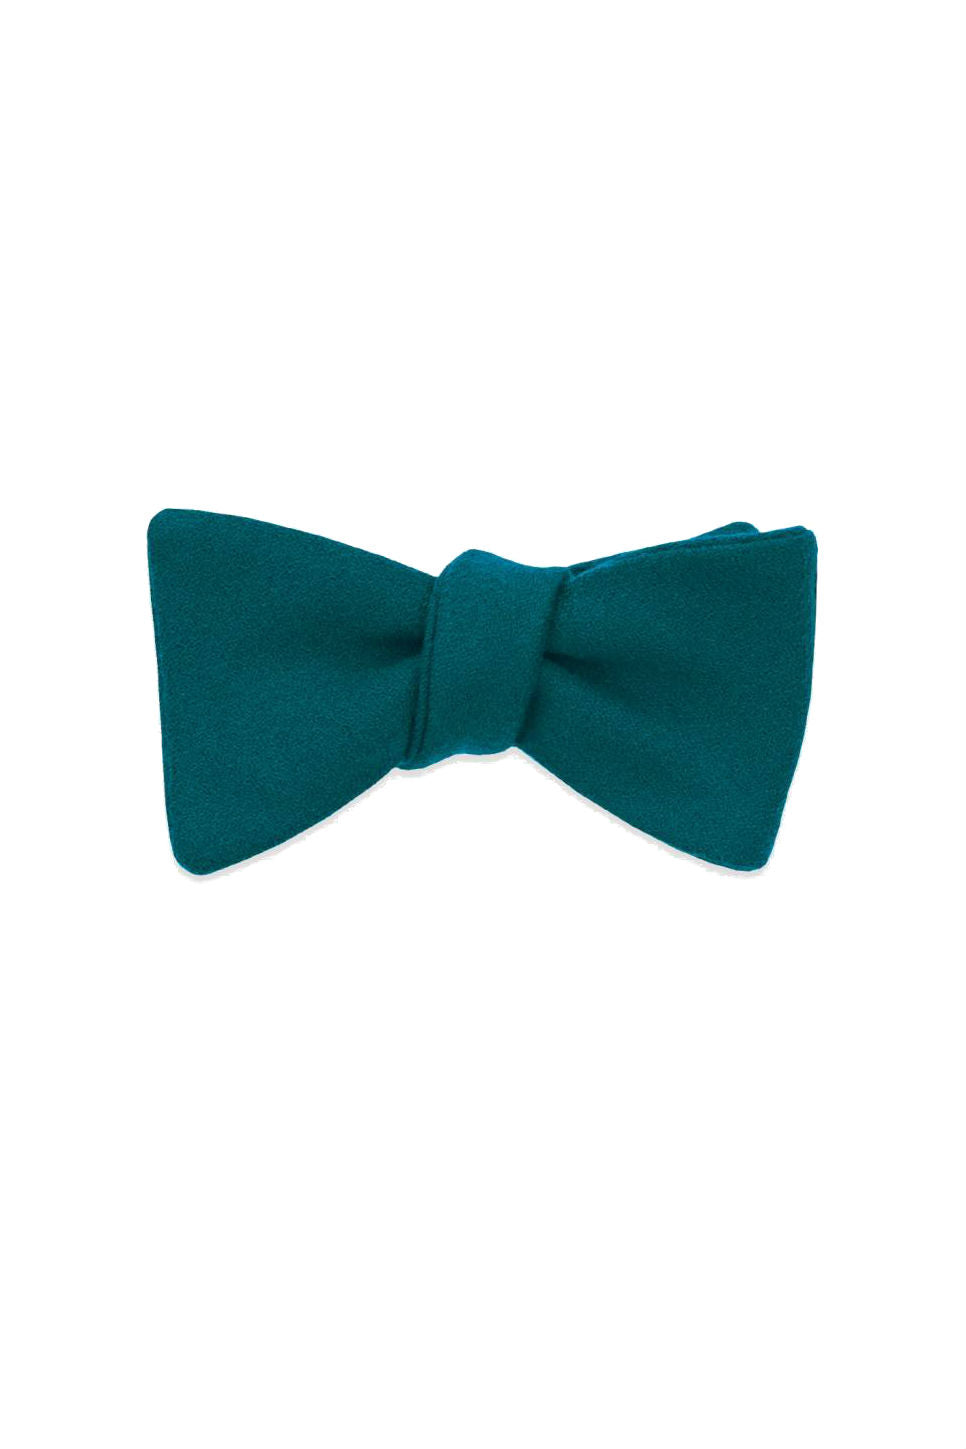 Pocket Square Clothing - The Frederick Bow Tie - Green